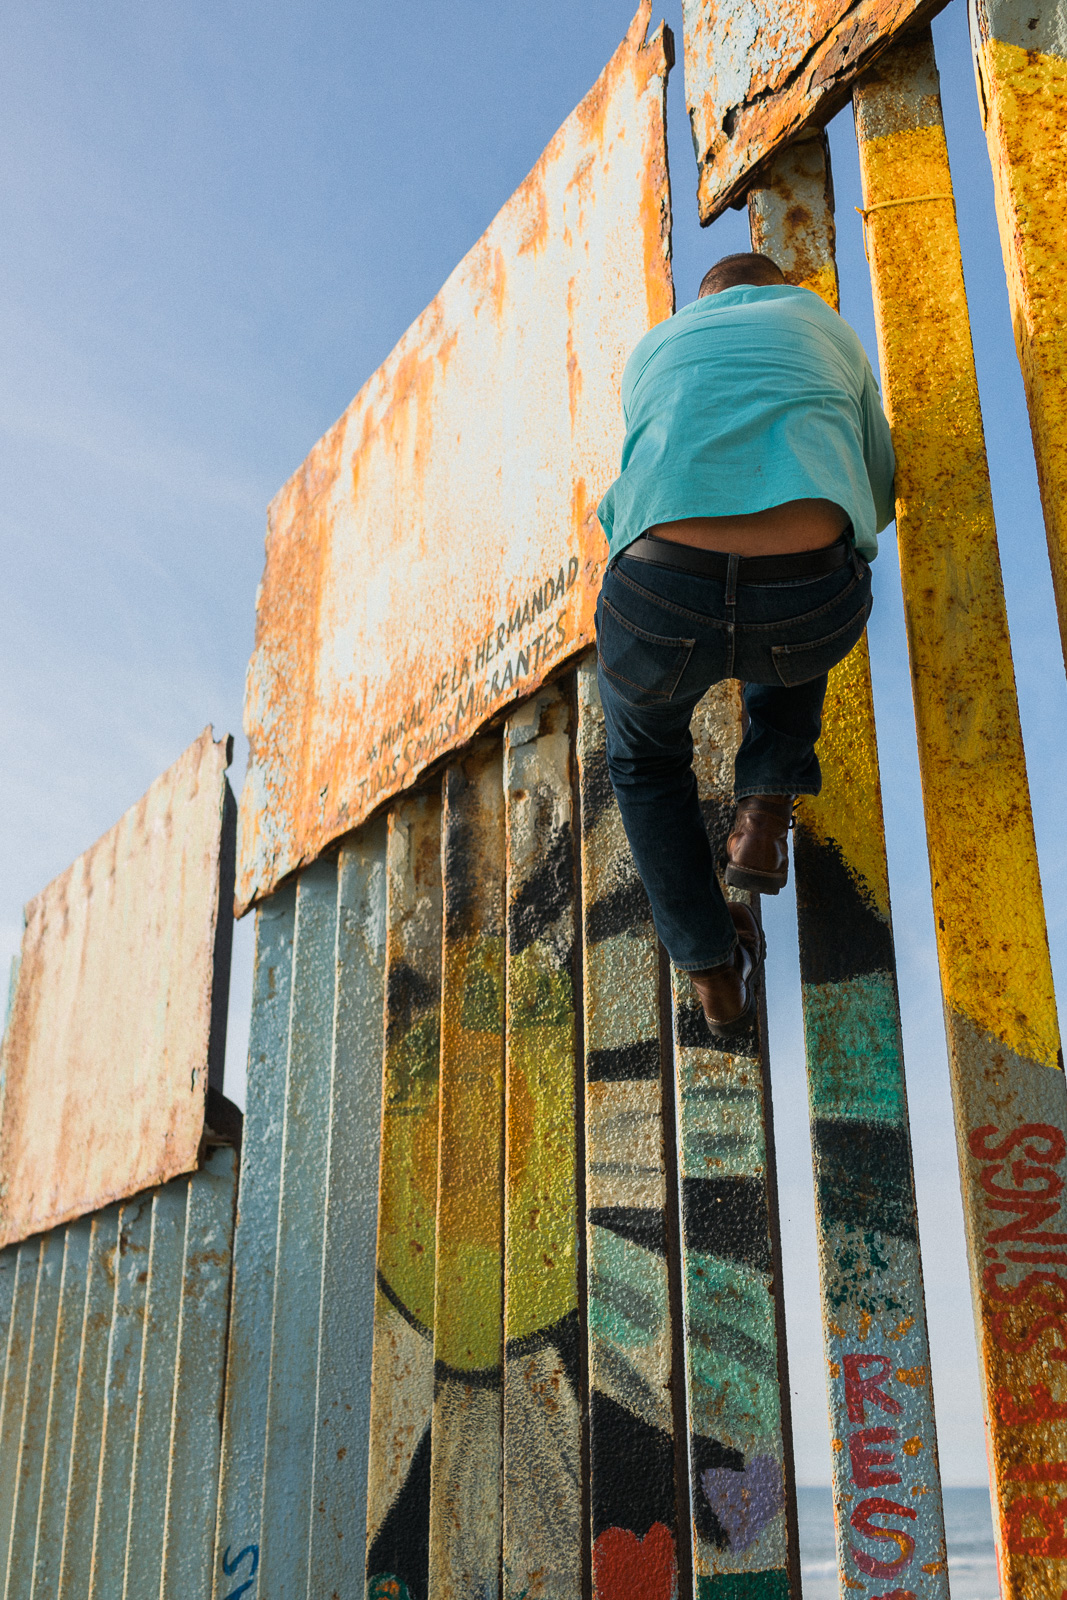 A man climbs a structure covered with art.